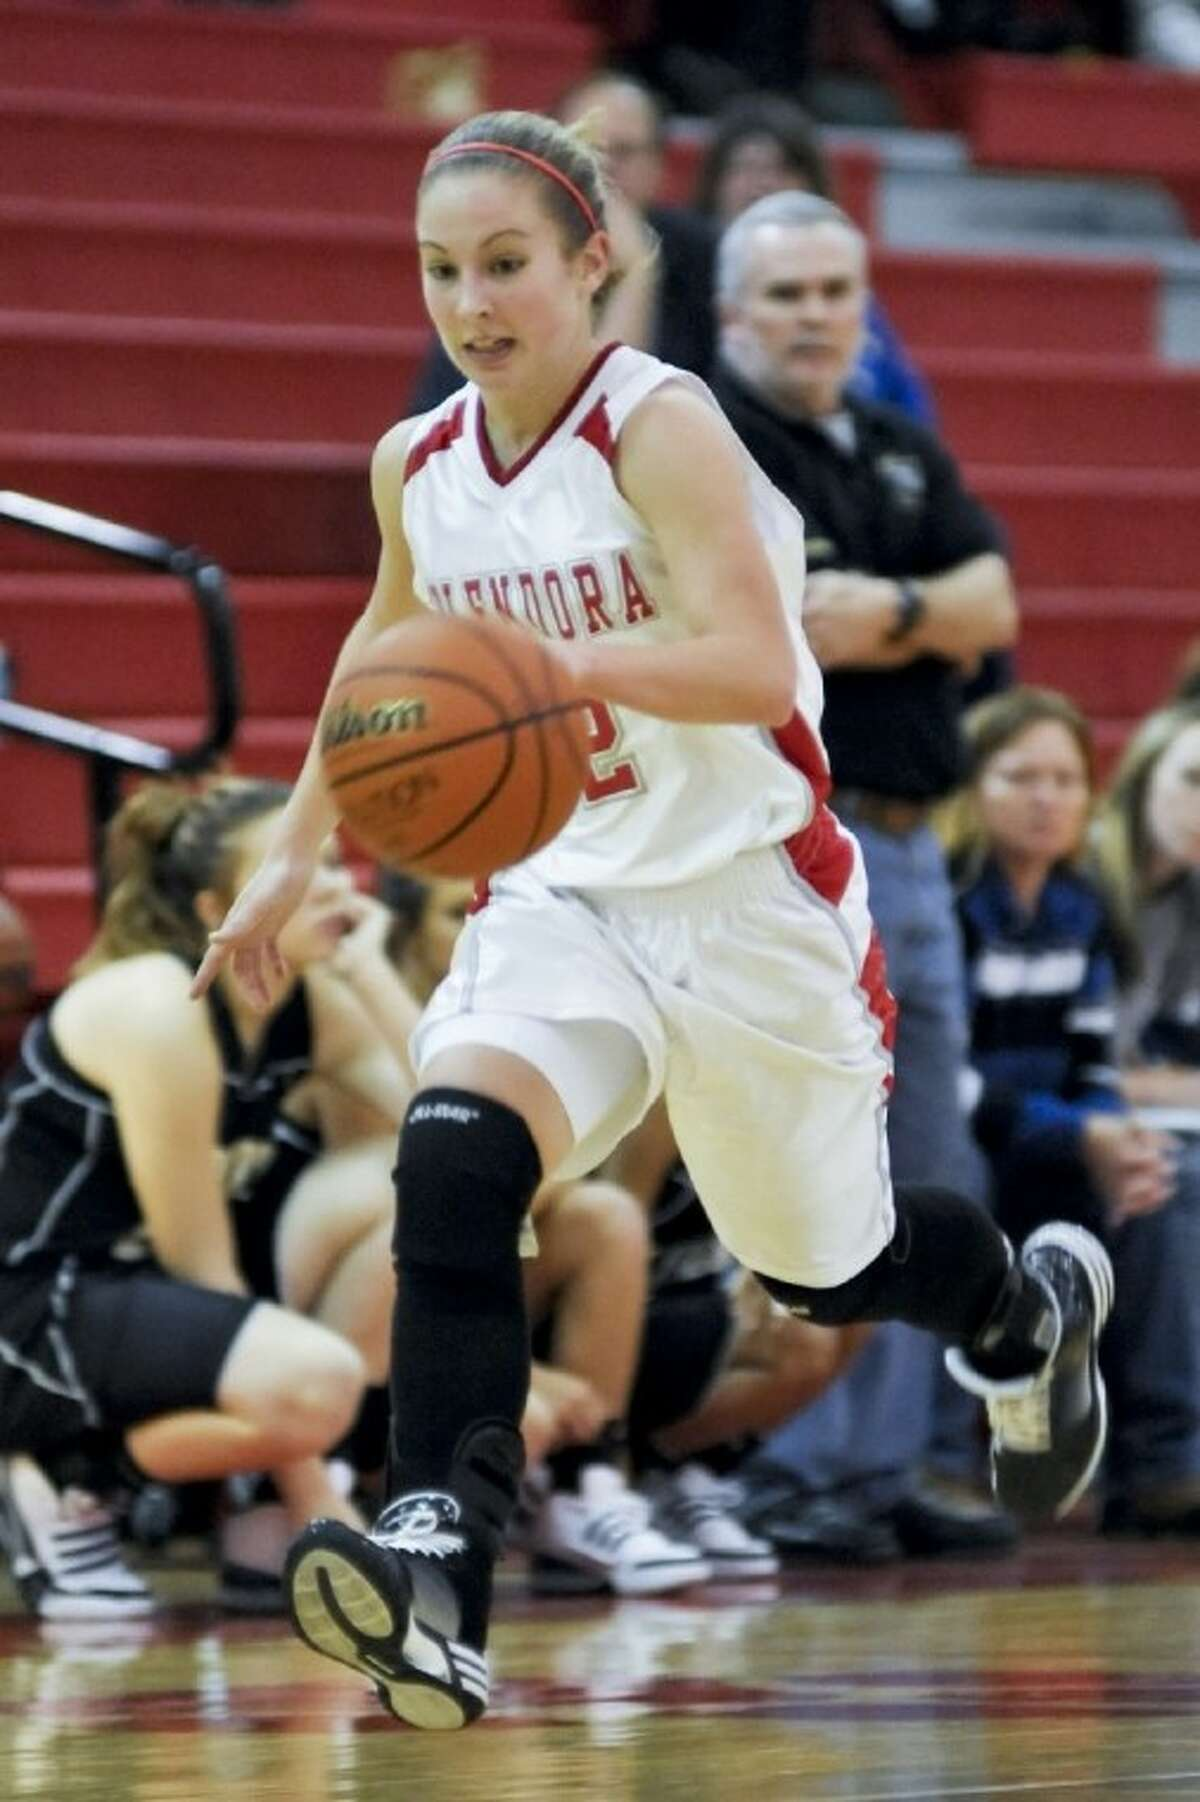 Splendora's Hannah Hathcock was named the All-Montgomery County Co-Offensive Most Valuable Player.